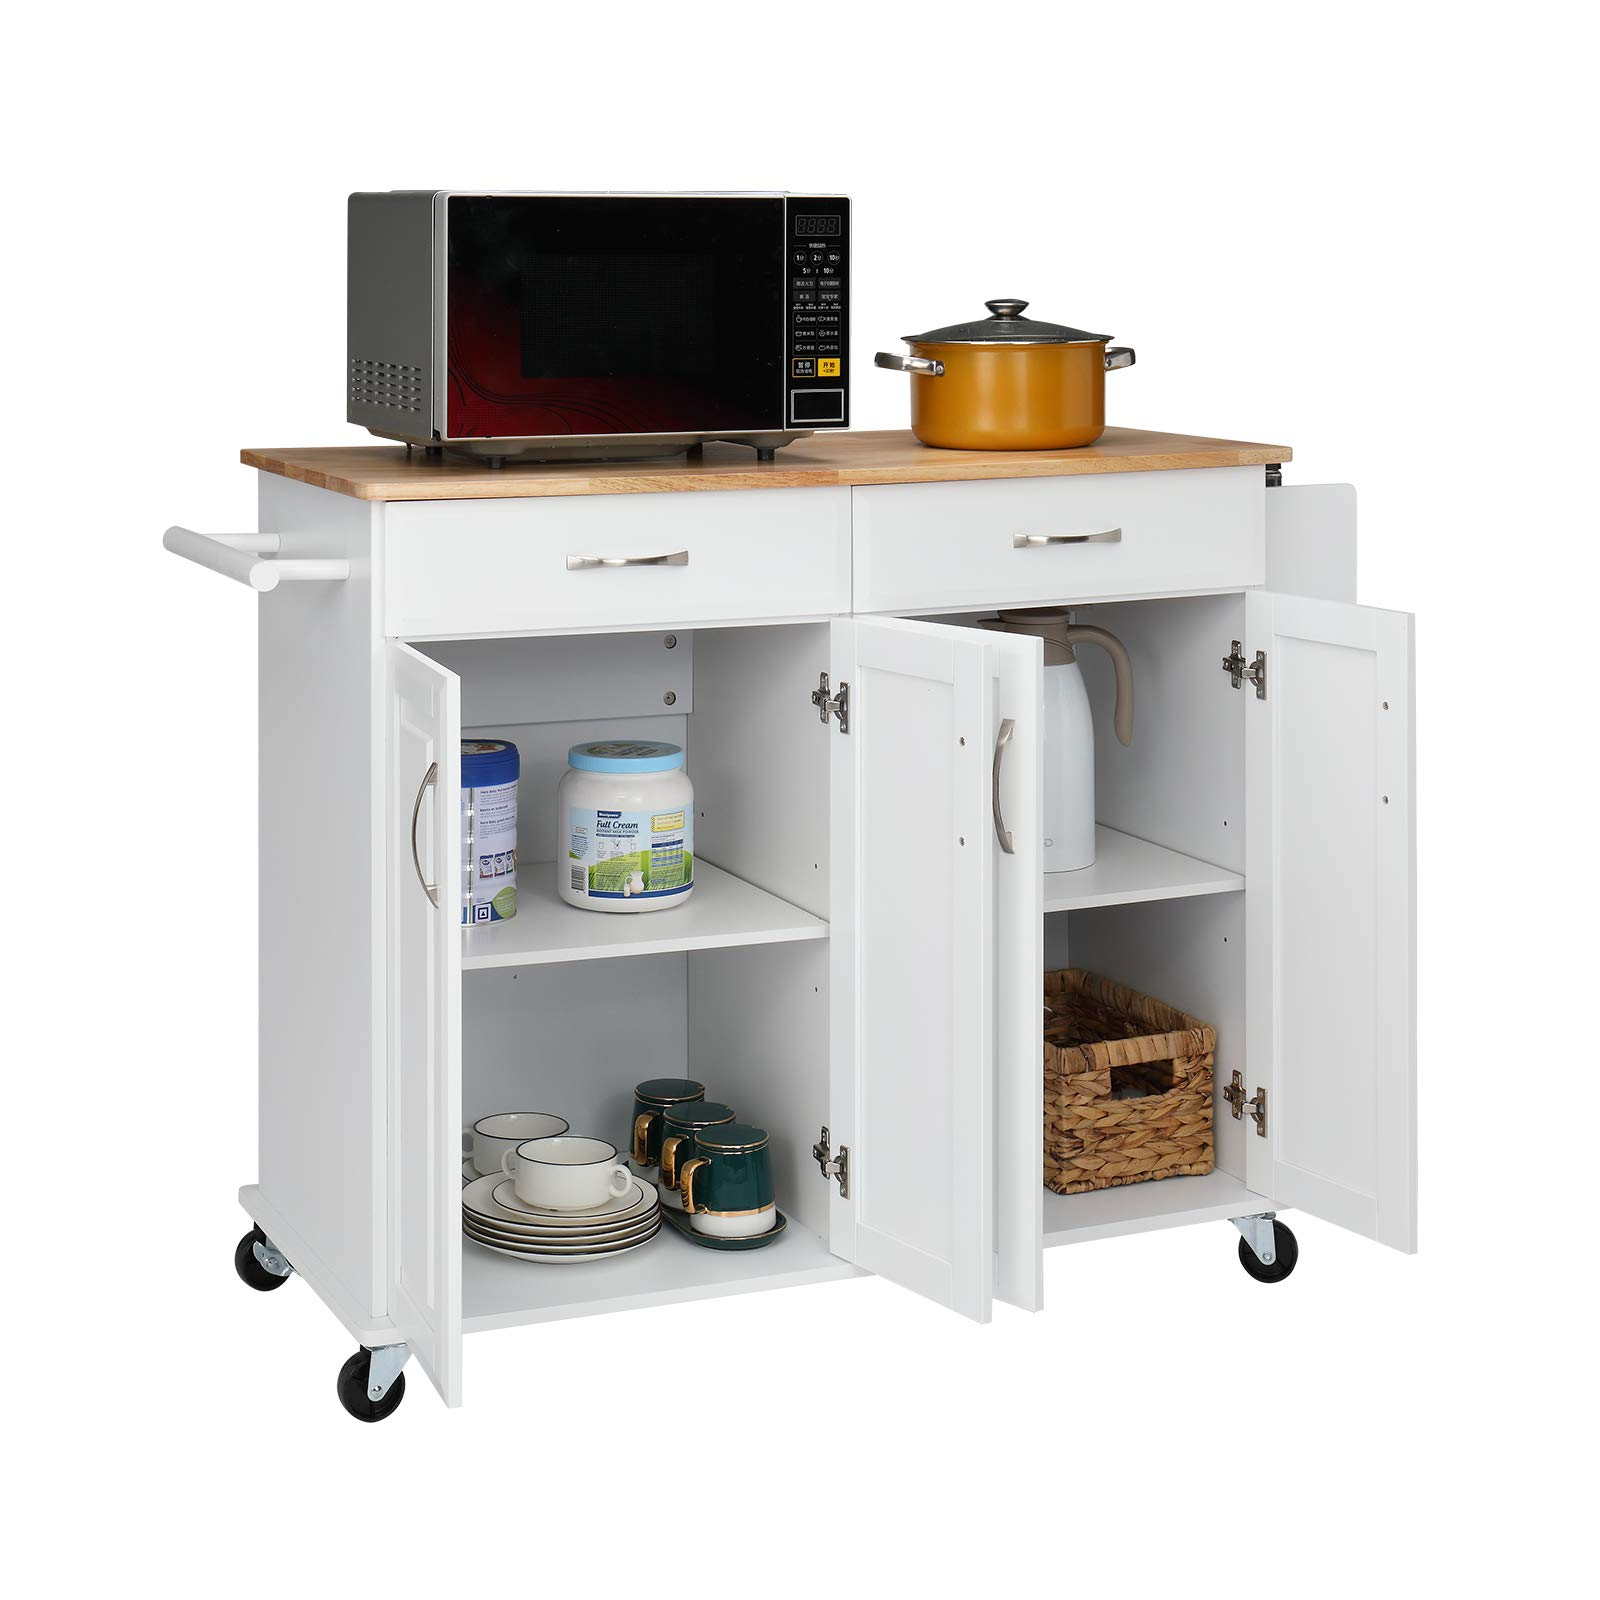 VINGLI Kitchen Island on Wheels Rolling Kitchen Buffet Cabinet Coffee Bar Cart 4 Doors and 2 Large Drawer with Storage Cabinet, Towel Handle, Spice Rack, Solid Wood Top and Loackable Castors, White